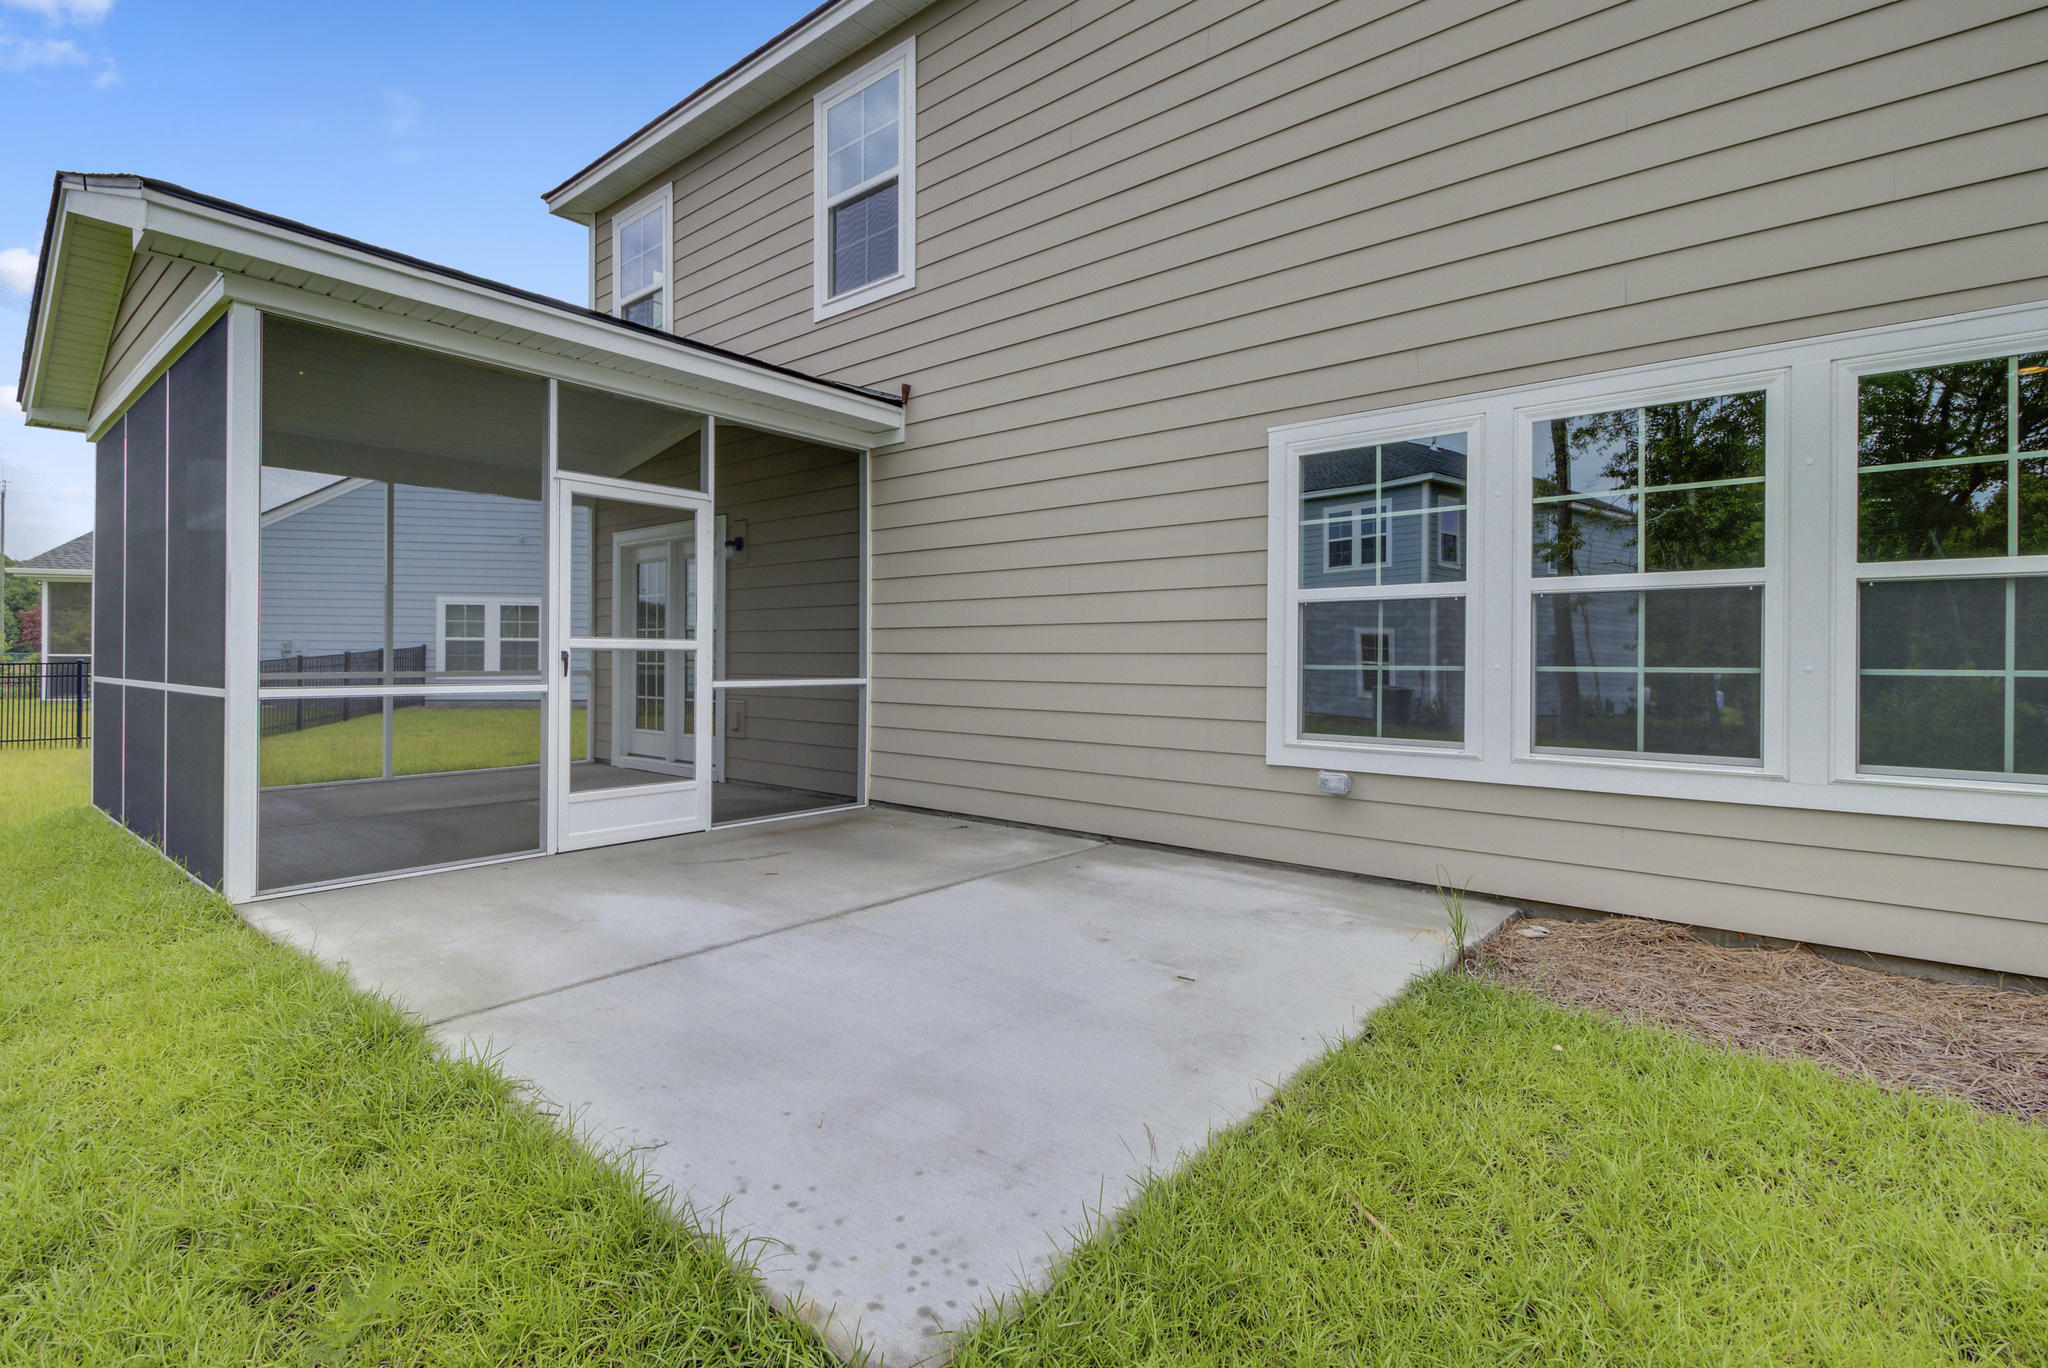 St. Johns Lake Homes For Sale - 1005 Pigeon, Johns Island, SC - 4